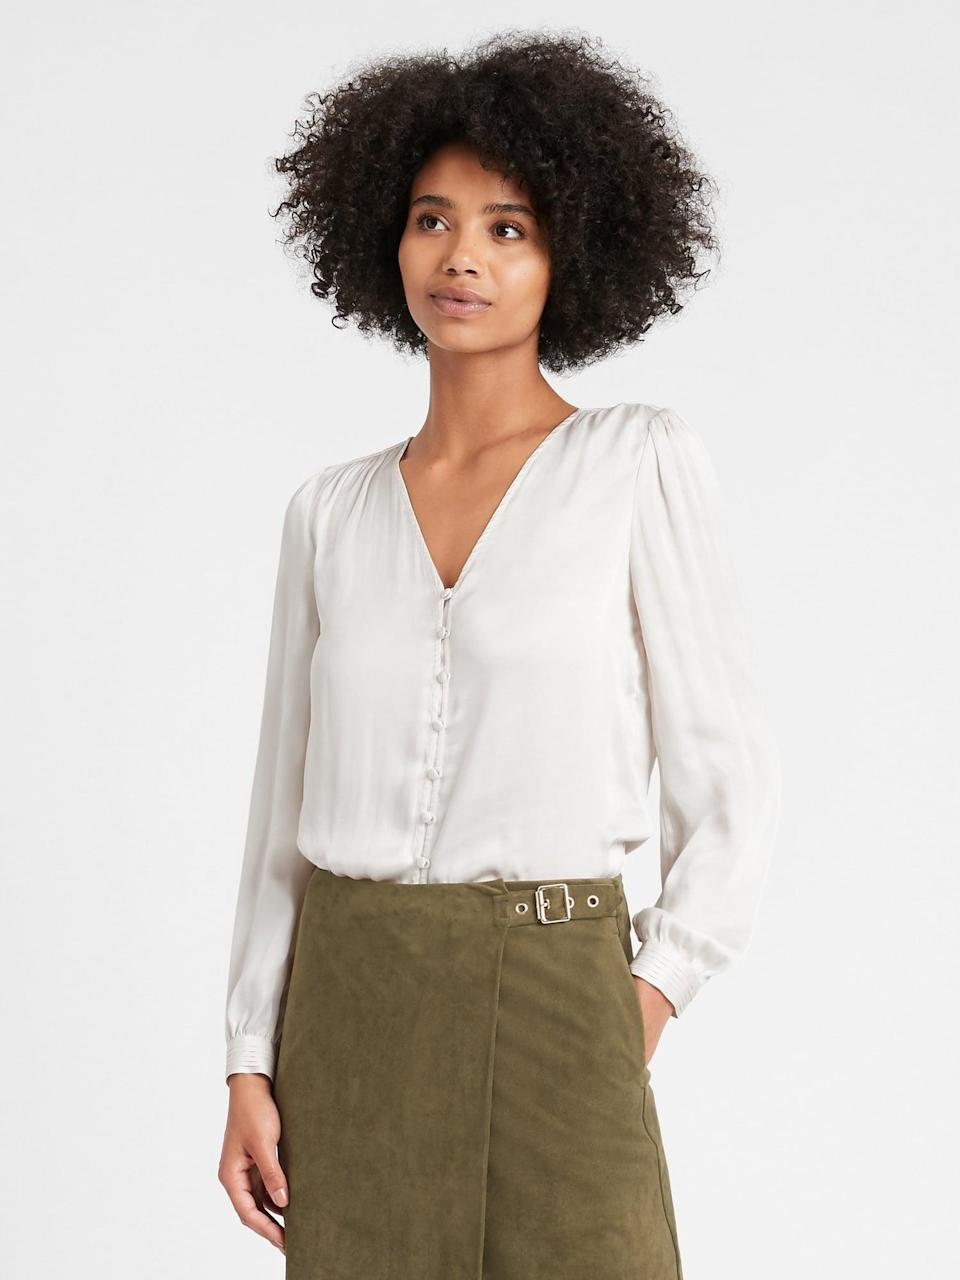 """<p>This <span>Banana Republic Soft Satin V-Neck Blouse</span> ($23) is perfect under a blazer. Can't you see <a href=""""https://www.popsugar.com/fashion/get-kamala-harris-suffragette-style-with-banana-republic-47956783"""" class=""""link rapid-noclick-resp"""" rel=""""nofollow noopener"""" target=""""_blank"""" data-ylk=""""slk:VP Harris wearing something like it"""">VP Harris wearing something like it</a>?</p>"""